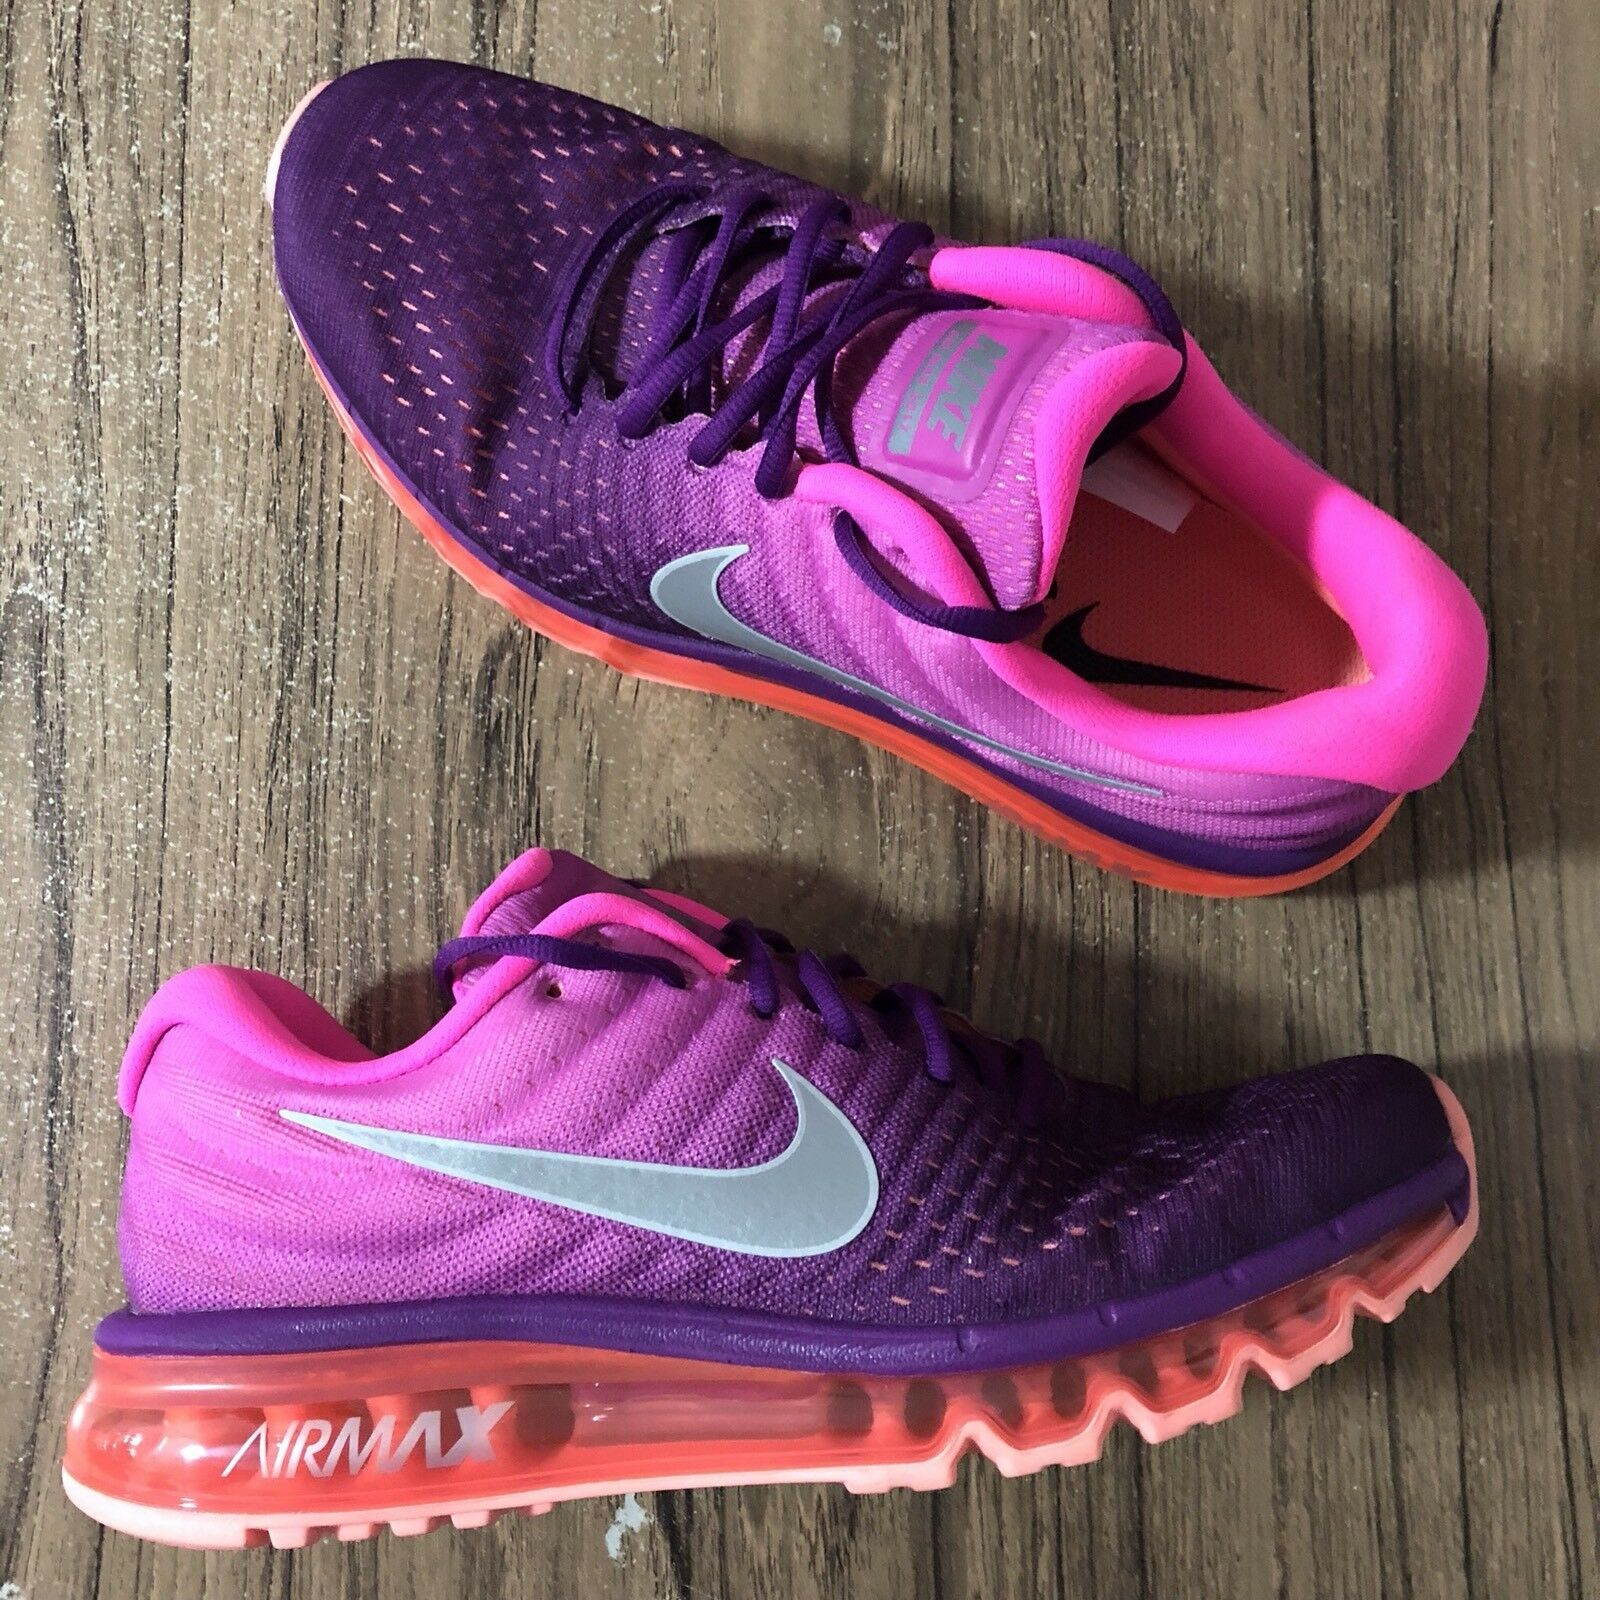 A789G Nike Women's Air Max 2017 Bright Grape Fire Pink 849560-502 Size 5 NEW